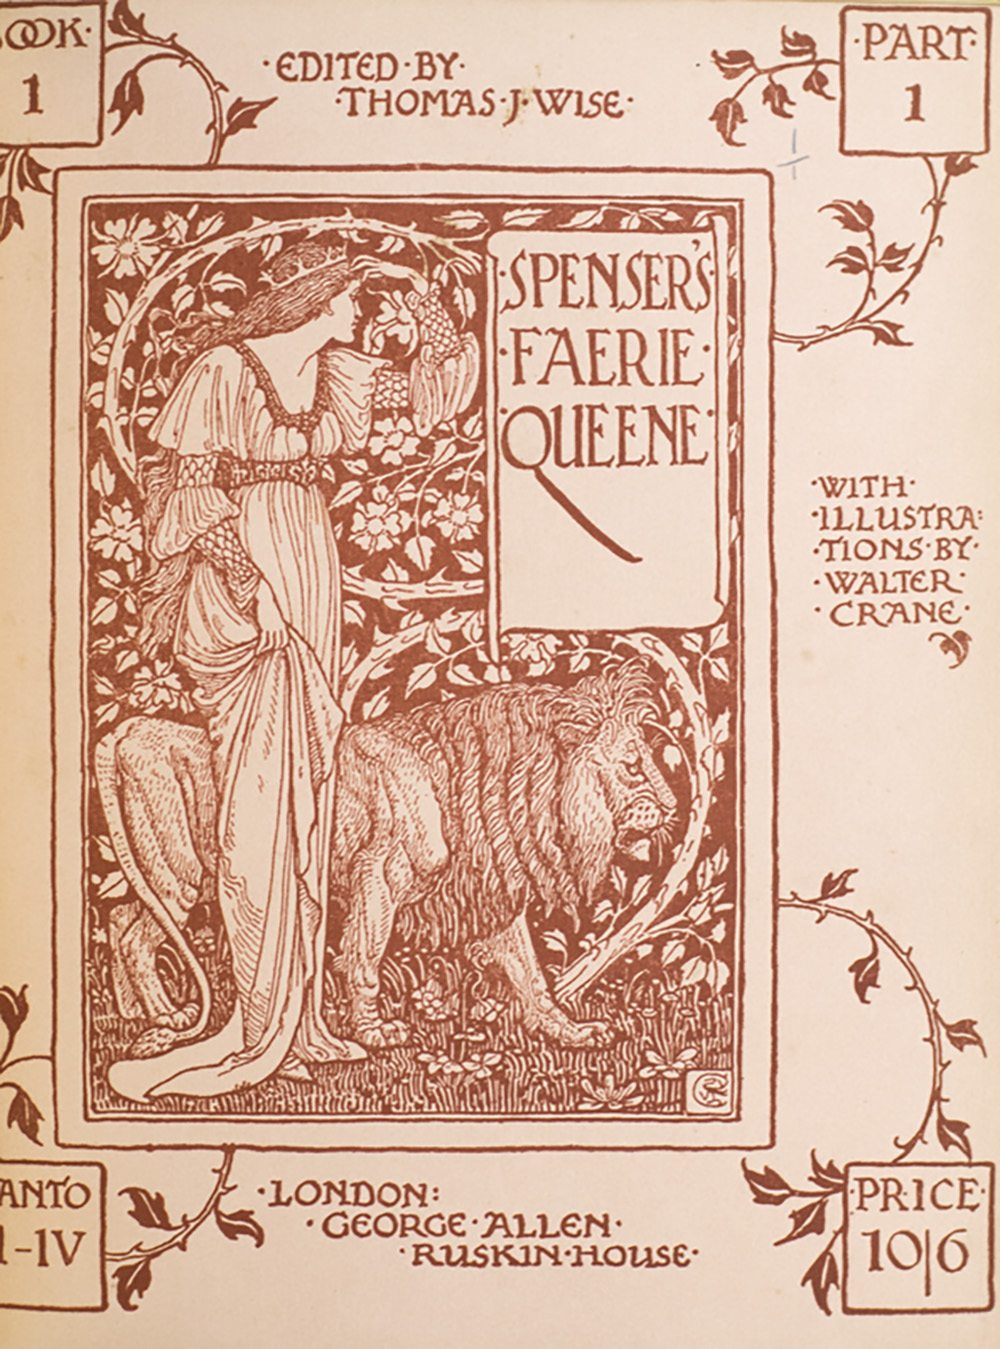 write an essay on spenser poem faerie queene Edmund spenser is known as the first english epic poet and by writing his epic the faerie queene he rendered a valuable service to the language he was well versed in foreign epics and it inspired him to develop a new epic in his own language.